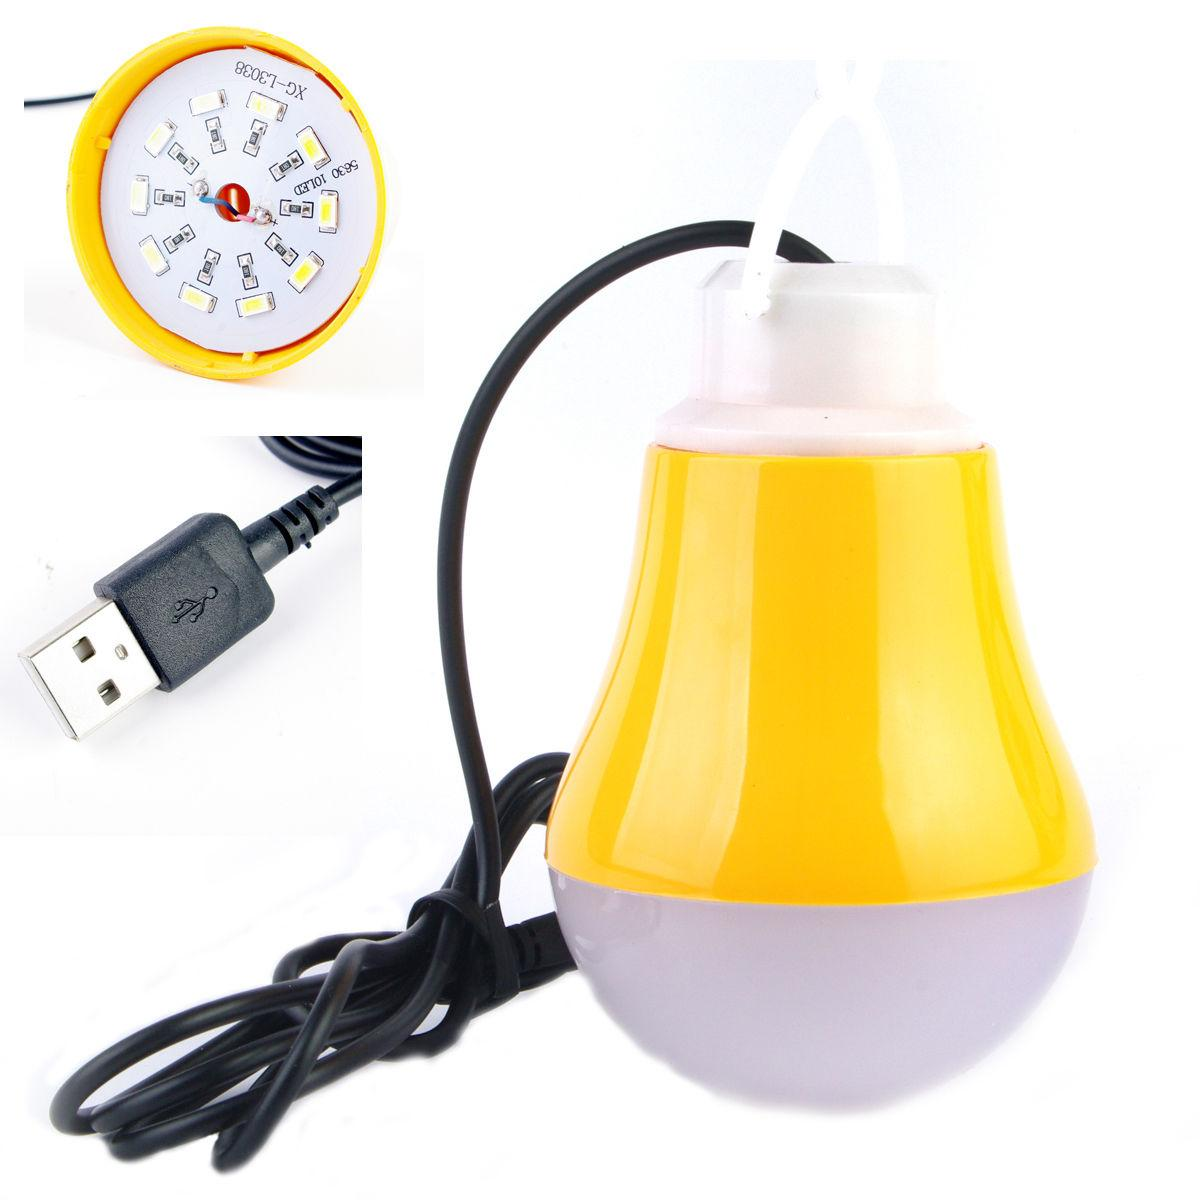 Beau 2018 Dc 5v 3w Portable Led Light Bulb Usb Light White Color Low Voltage  Reading Light Table Lamp Book Light From Best2011, $2.22 | Dhgate.Com